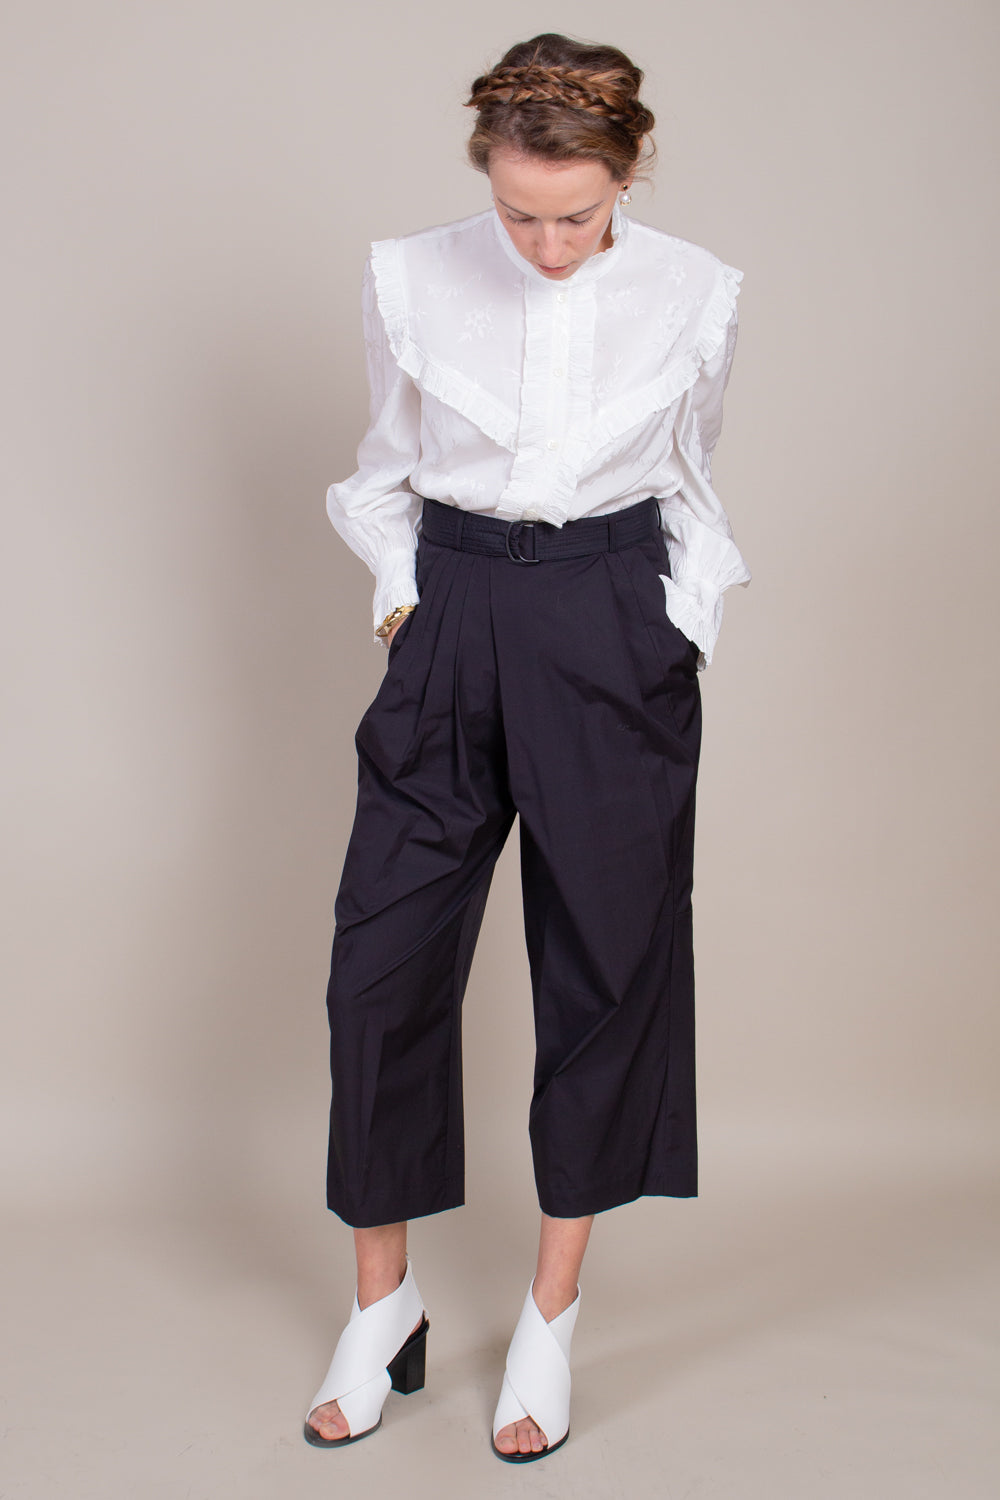 Pili Pant in Black